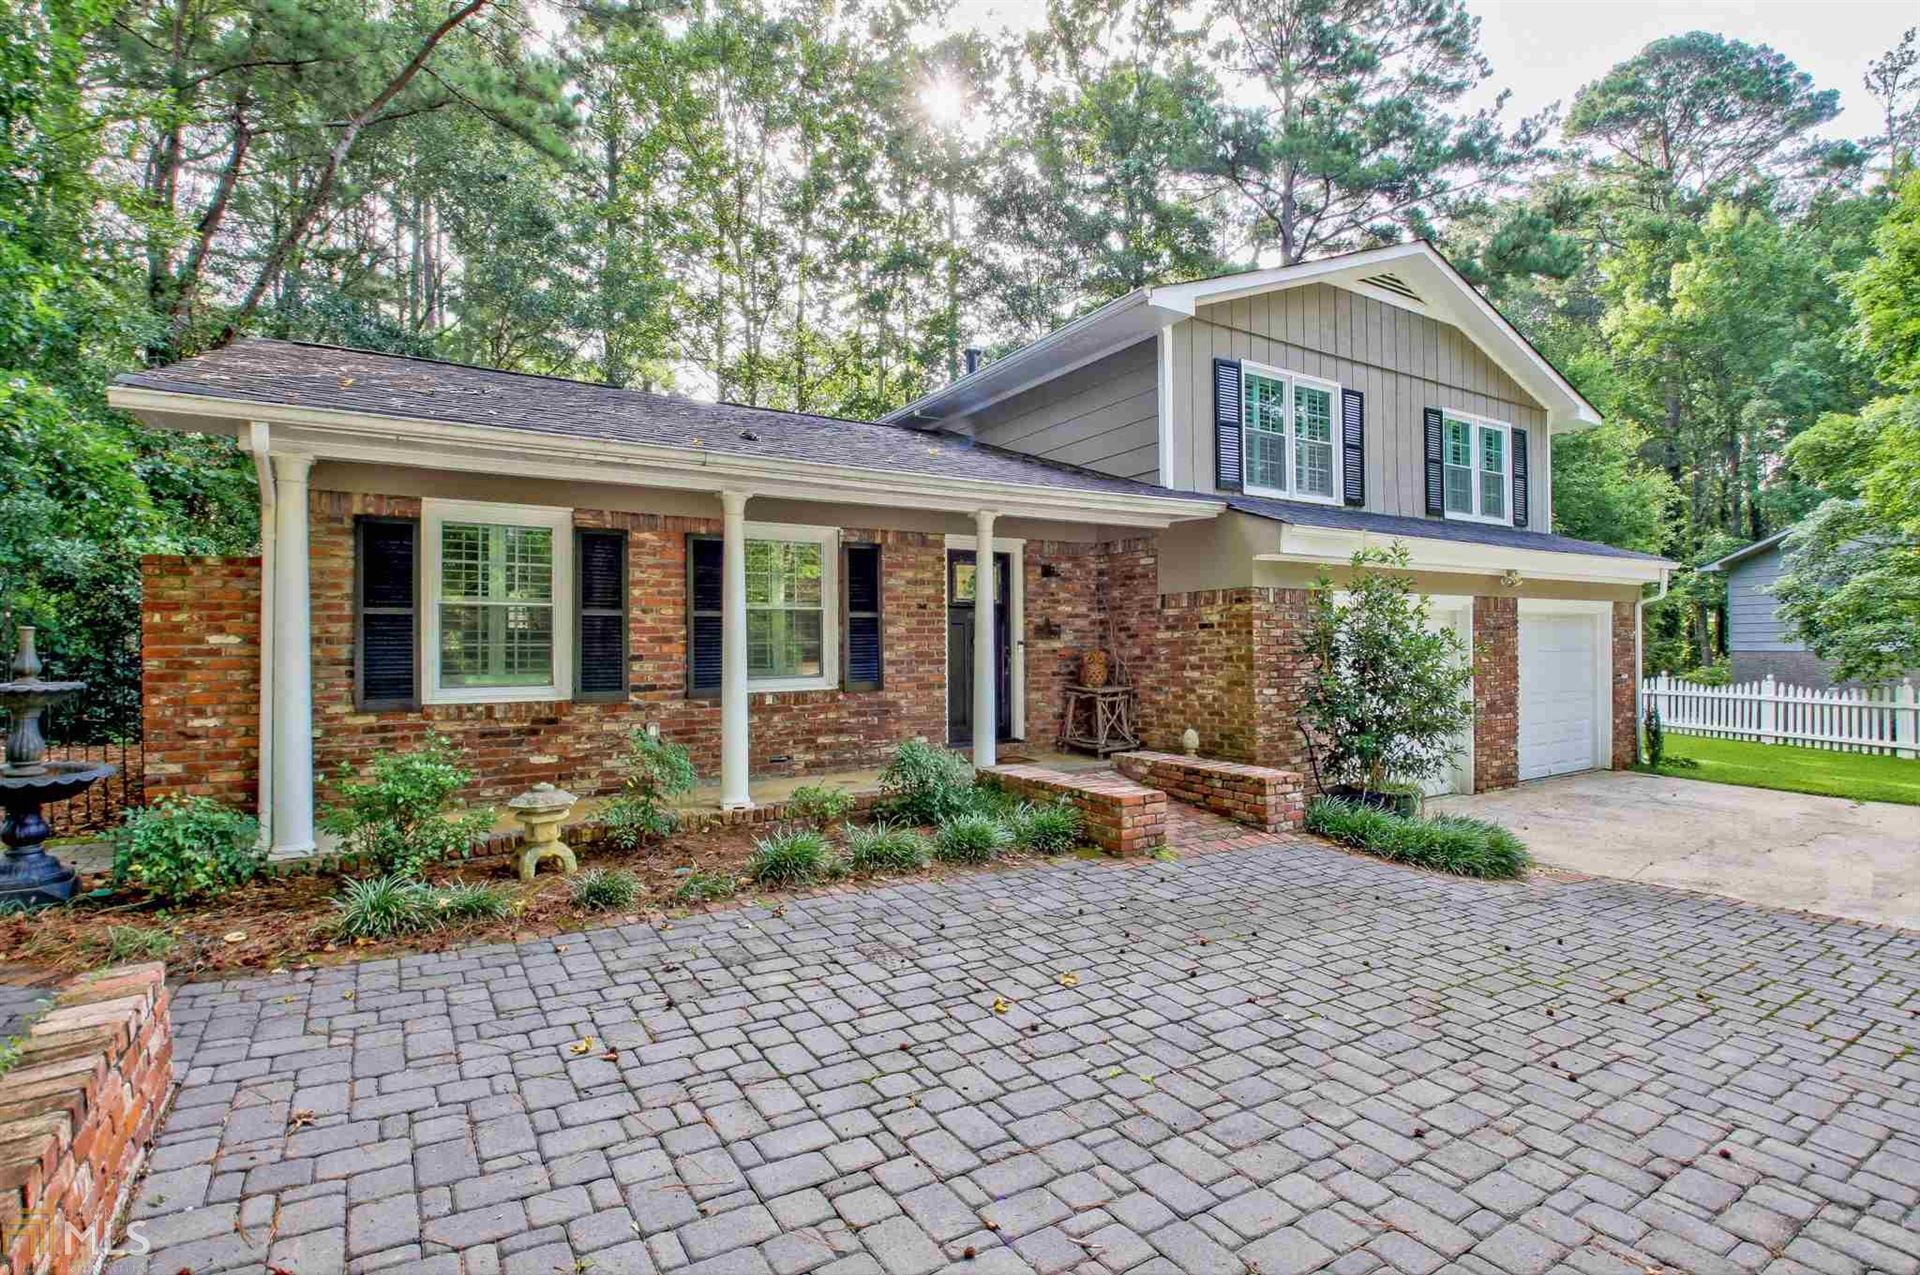 103 Laurel Ct, Peachtree City, GA 30269 - #: 8832250